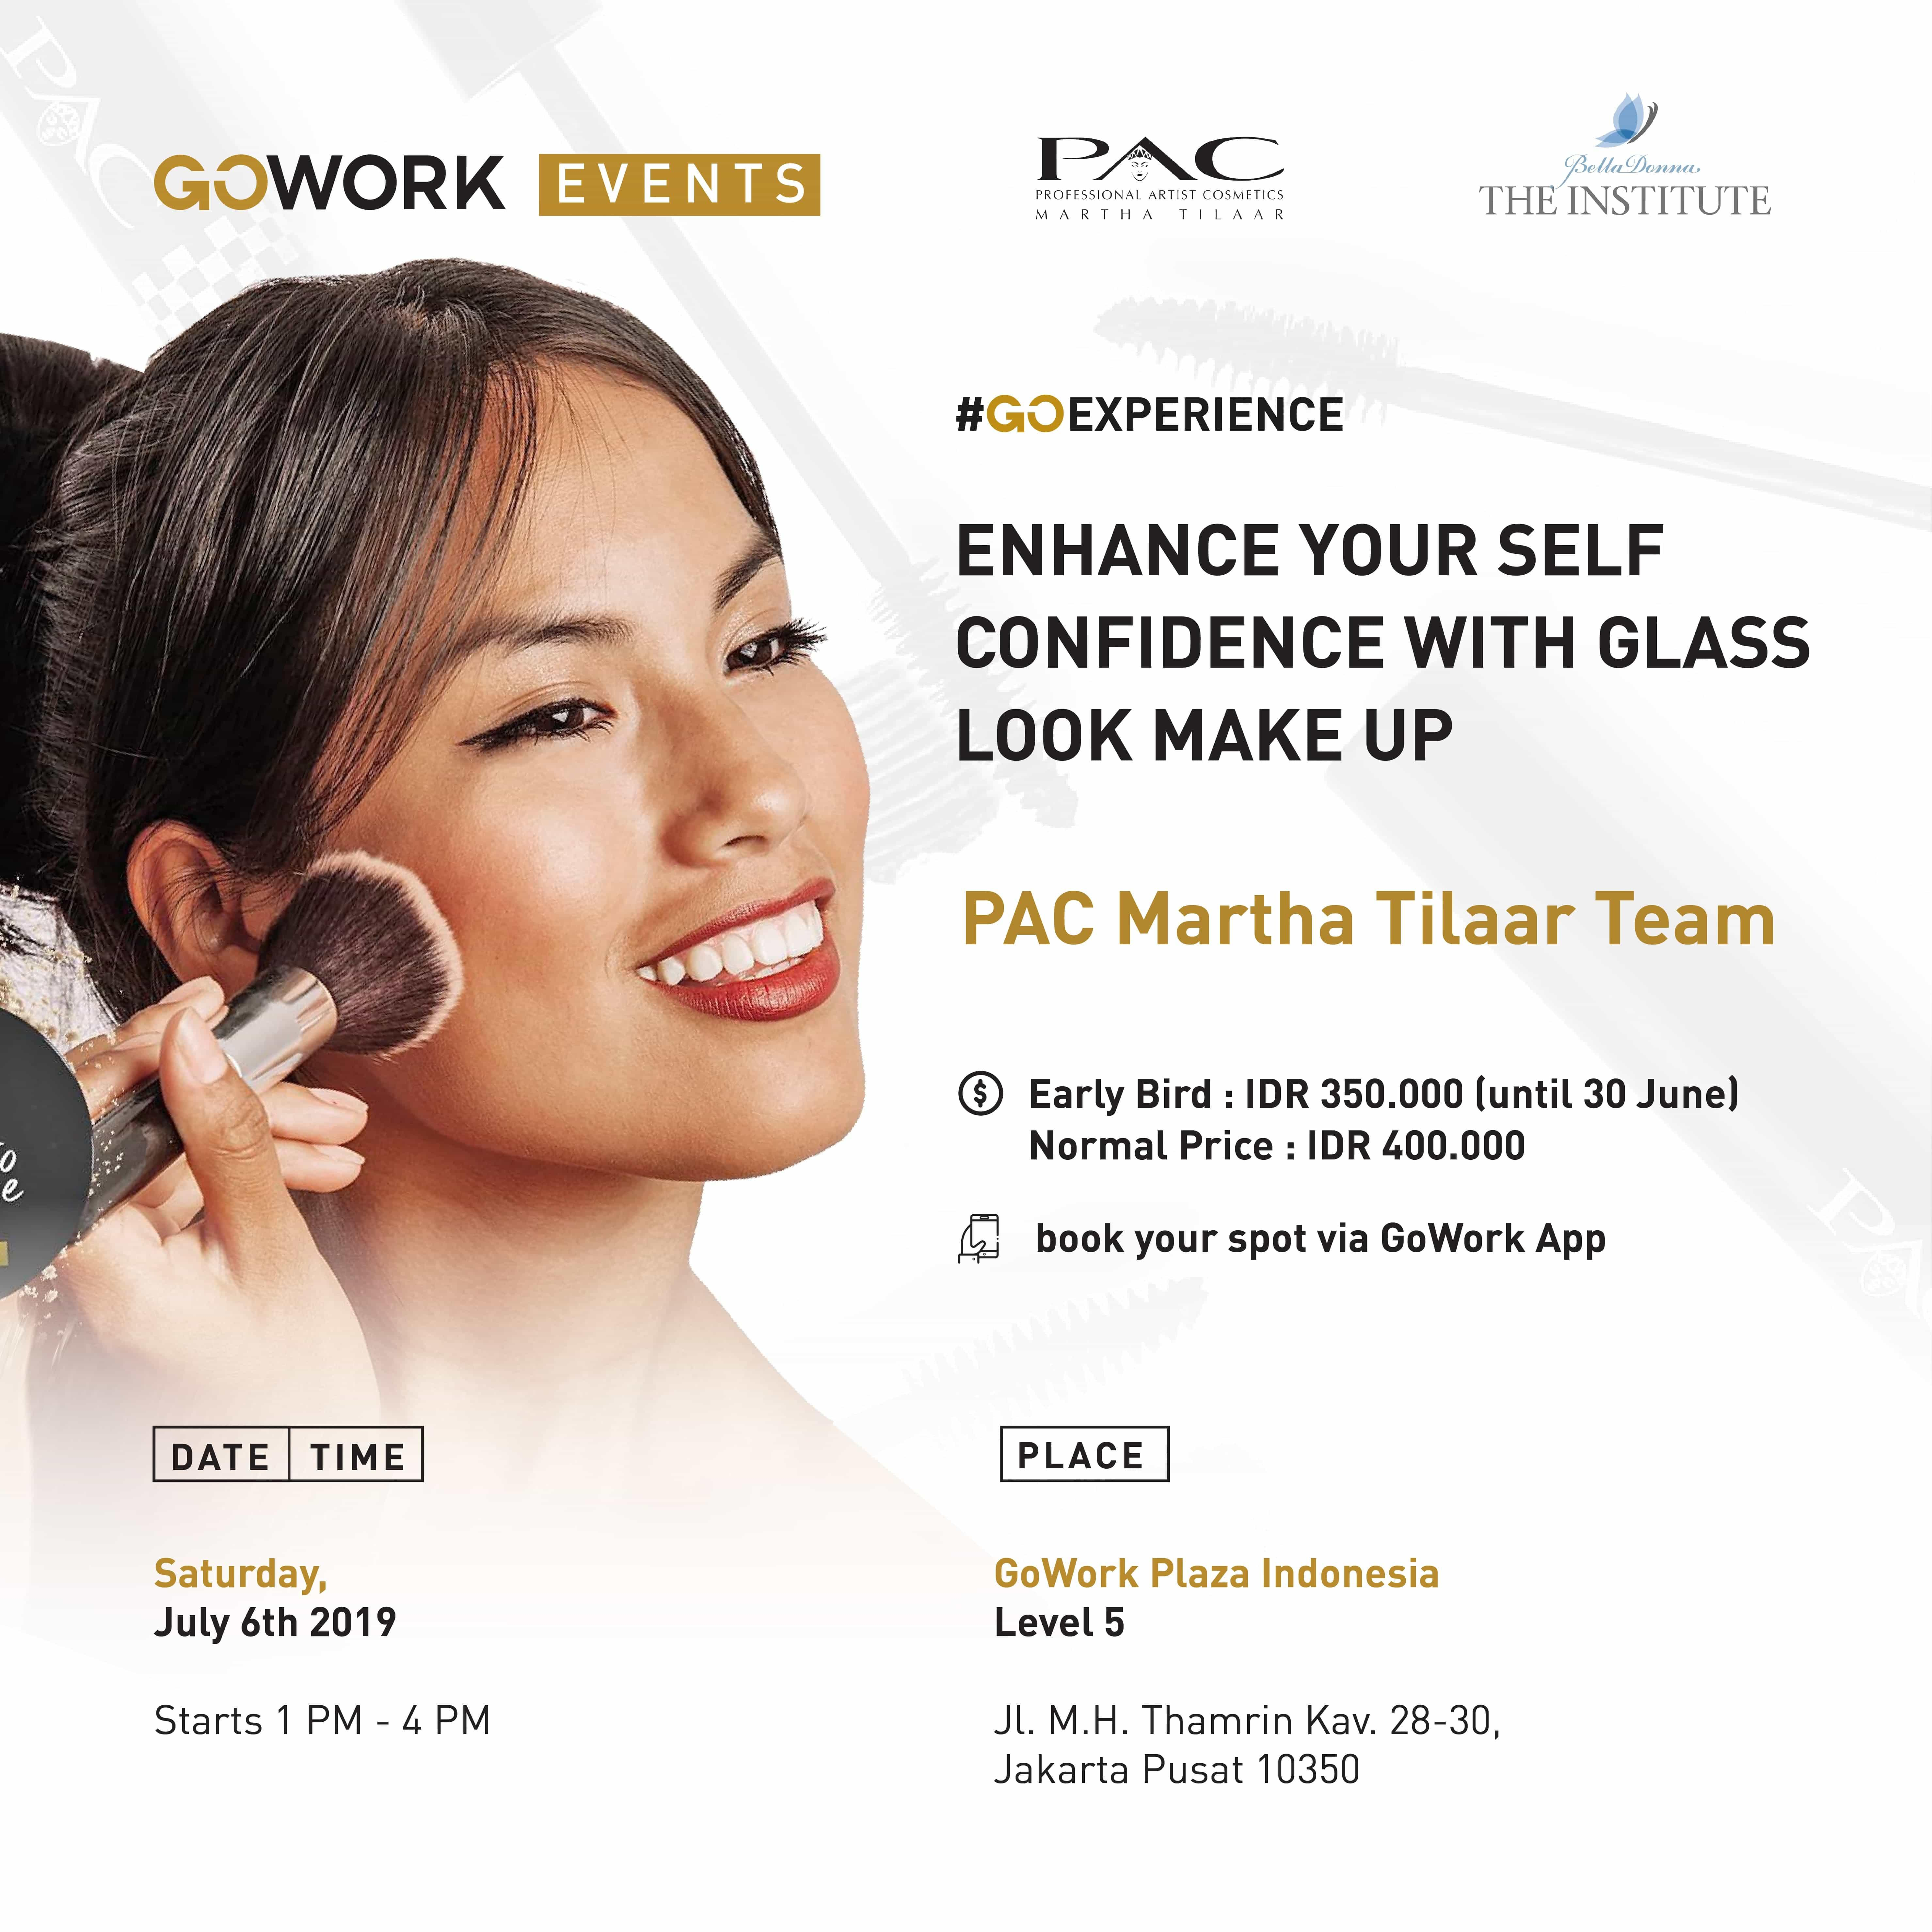 Enhance Your Self Confidence With Glass Look Make Up